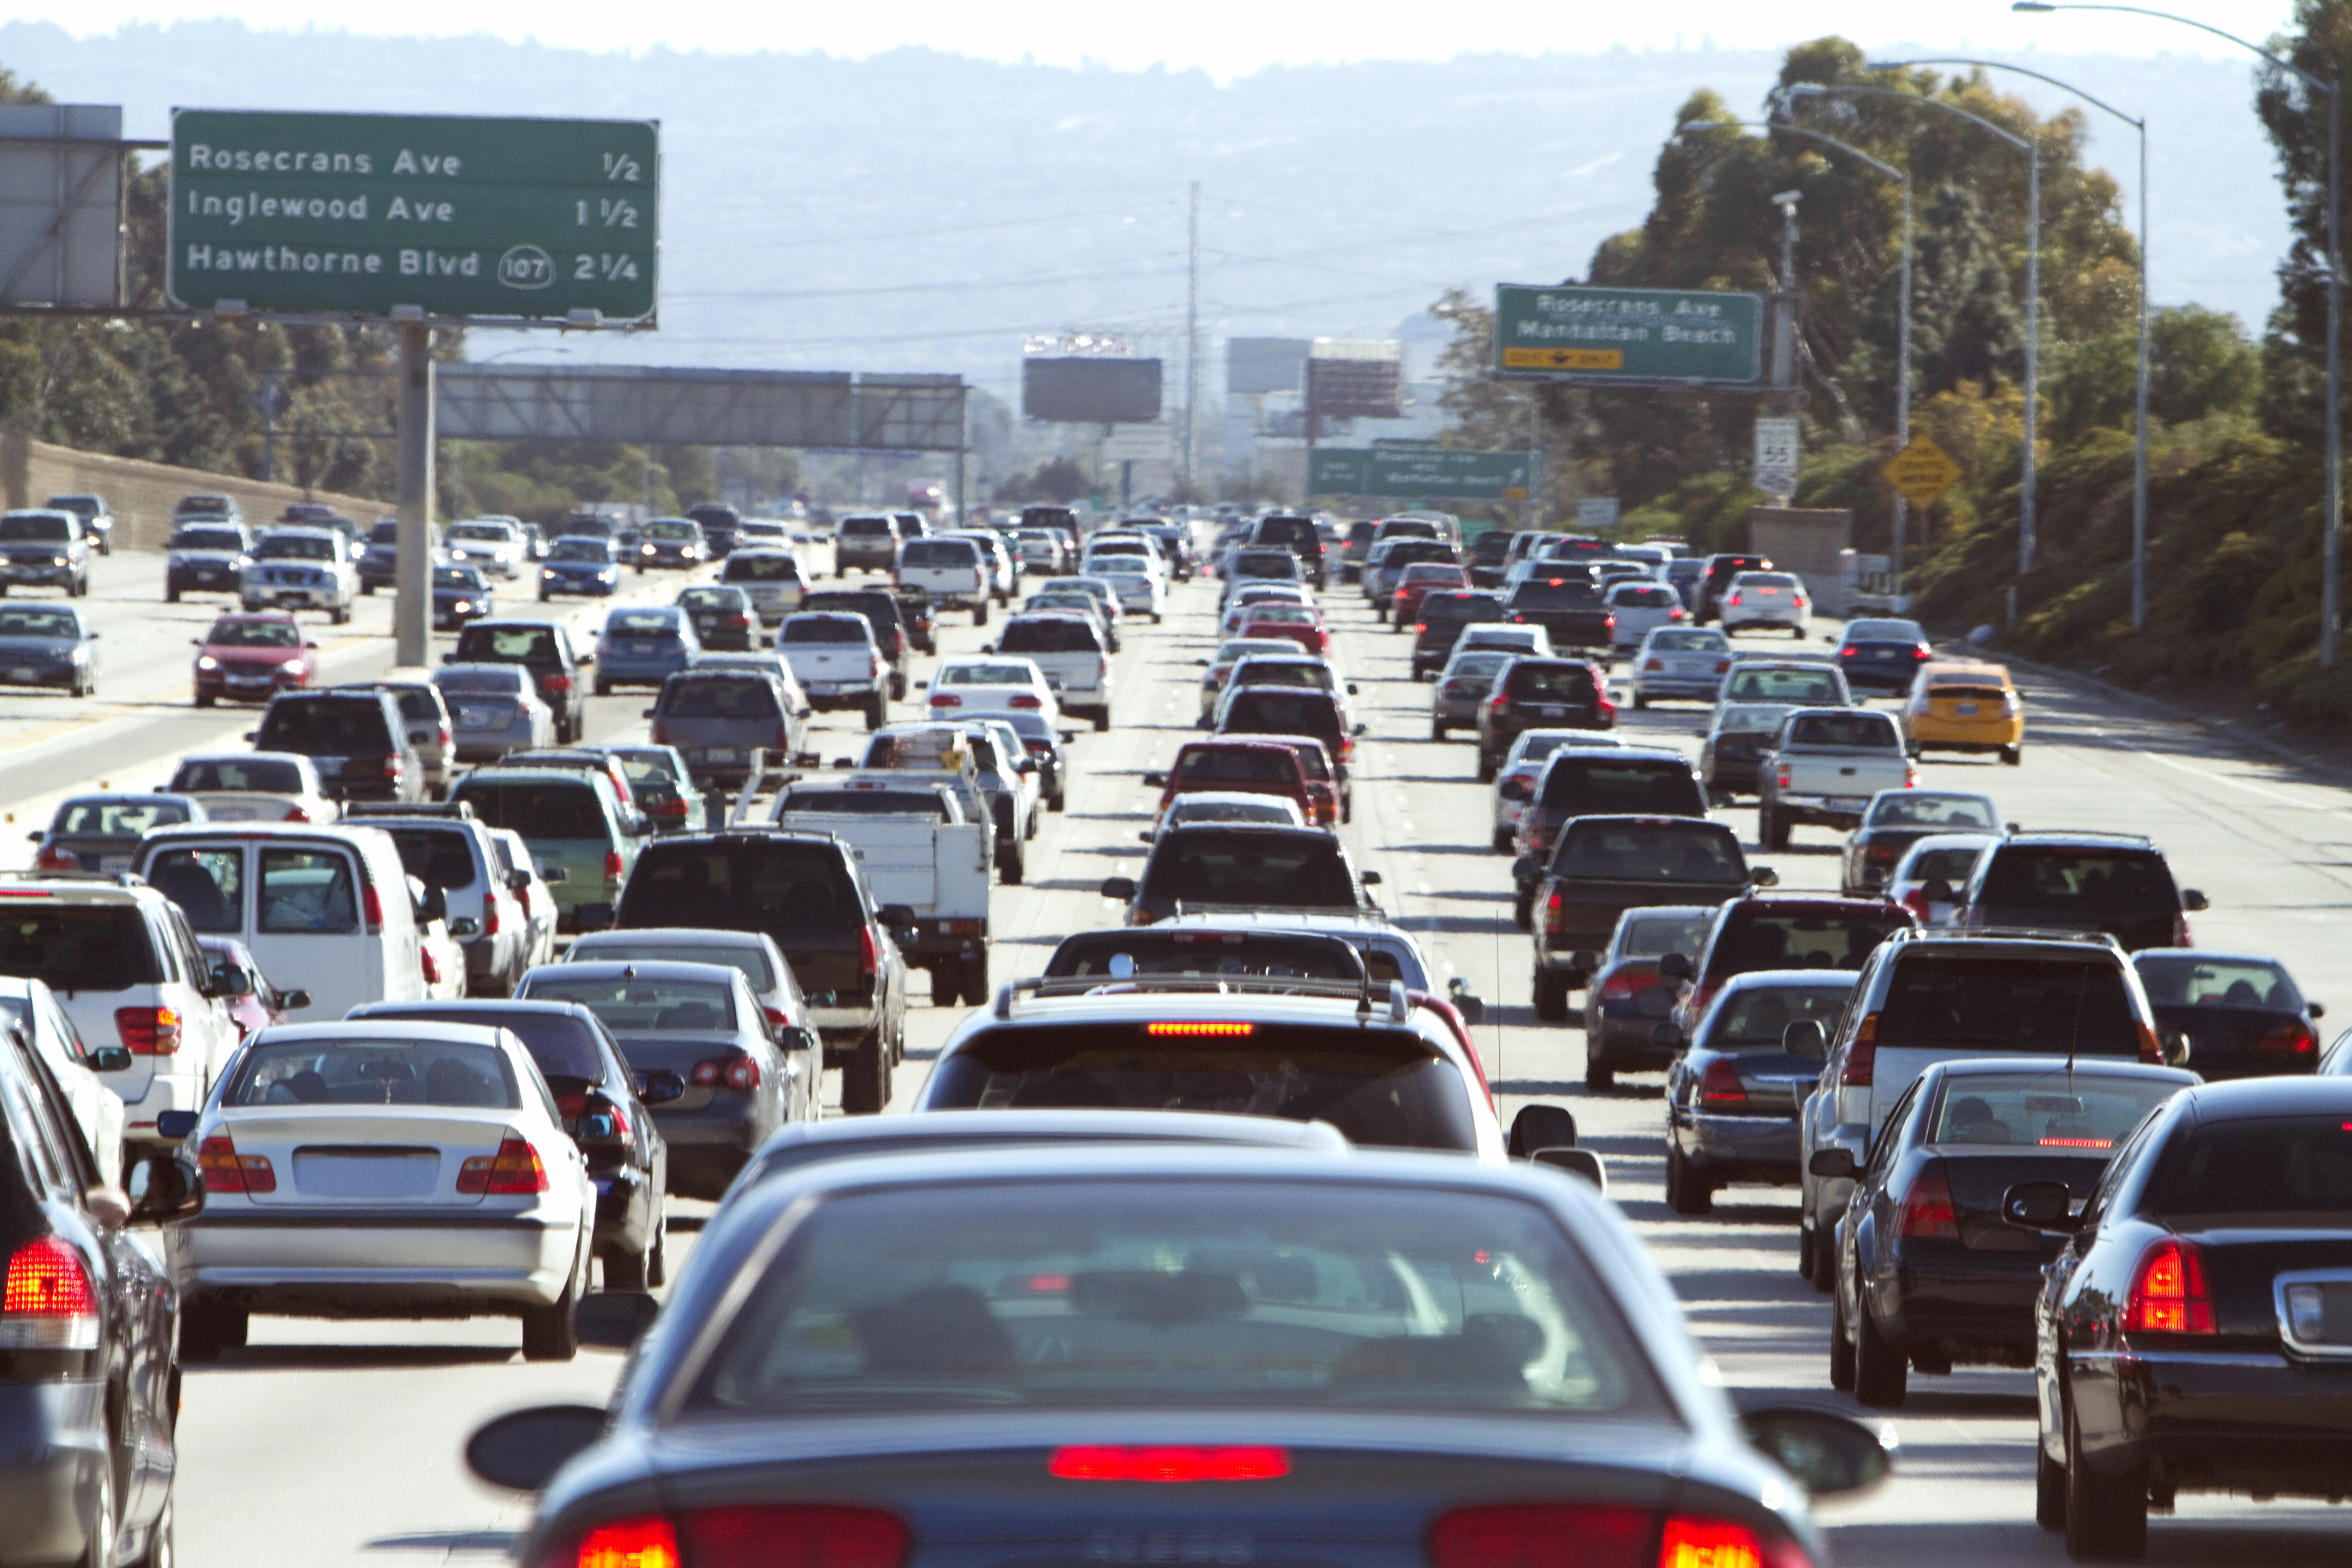 A traffic jam on the 405 freeway in Los Angeles, California.